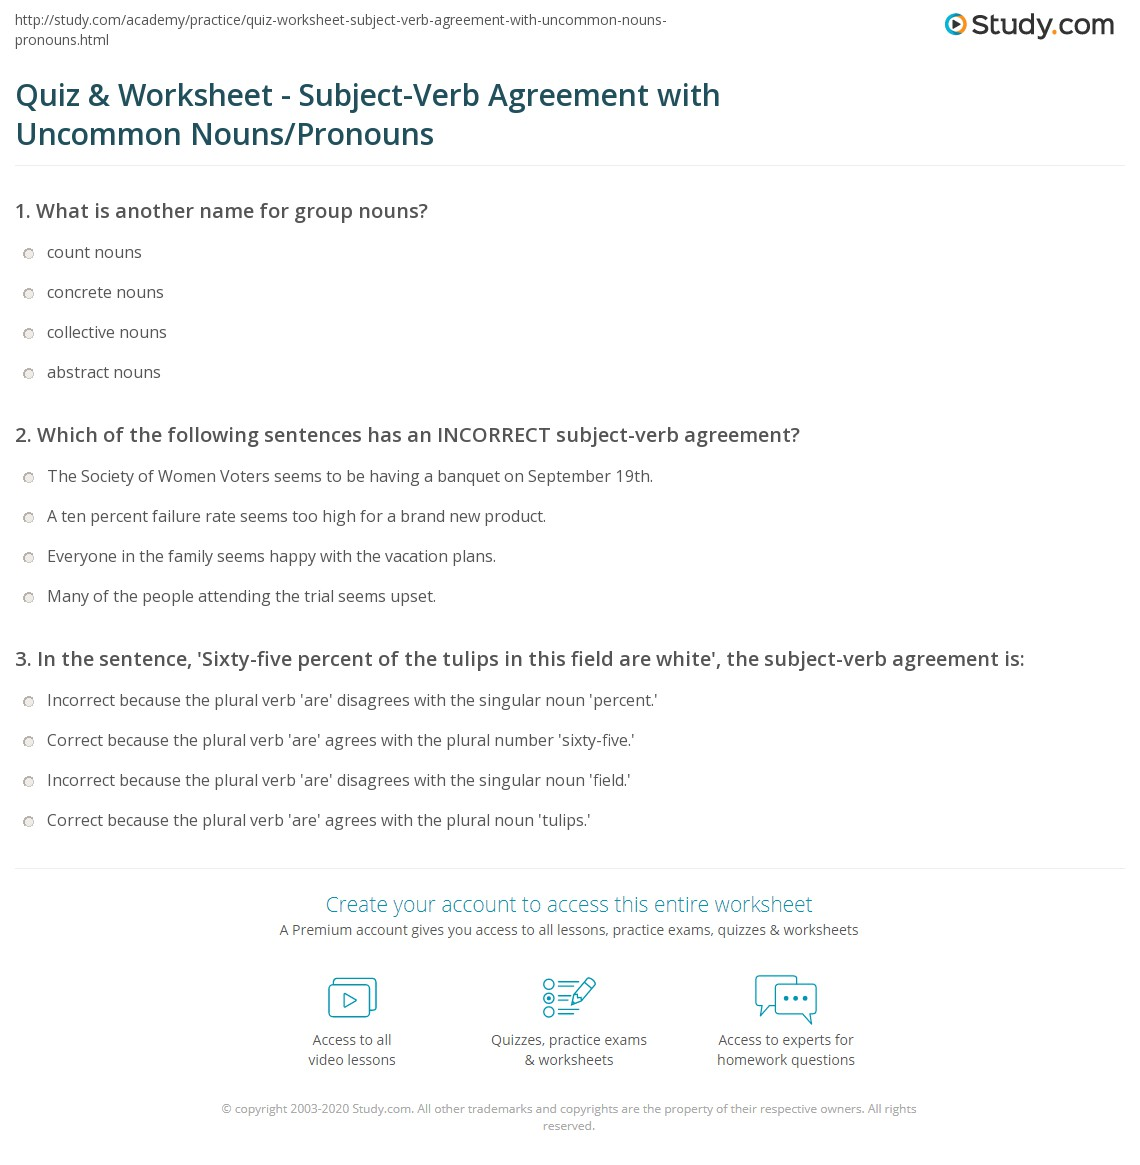 Quiz Worksheet Subject Verb Agreement With Uncommon